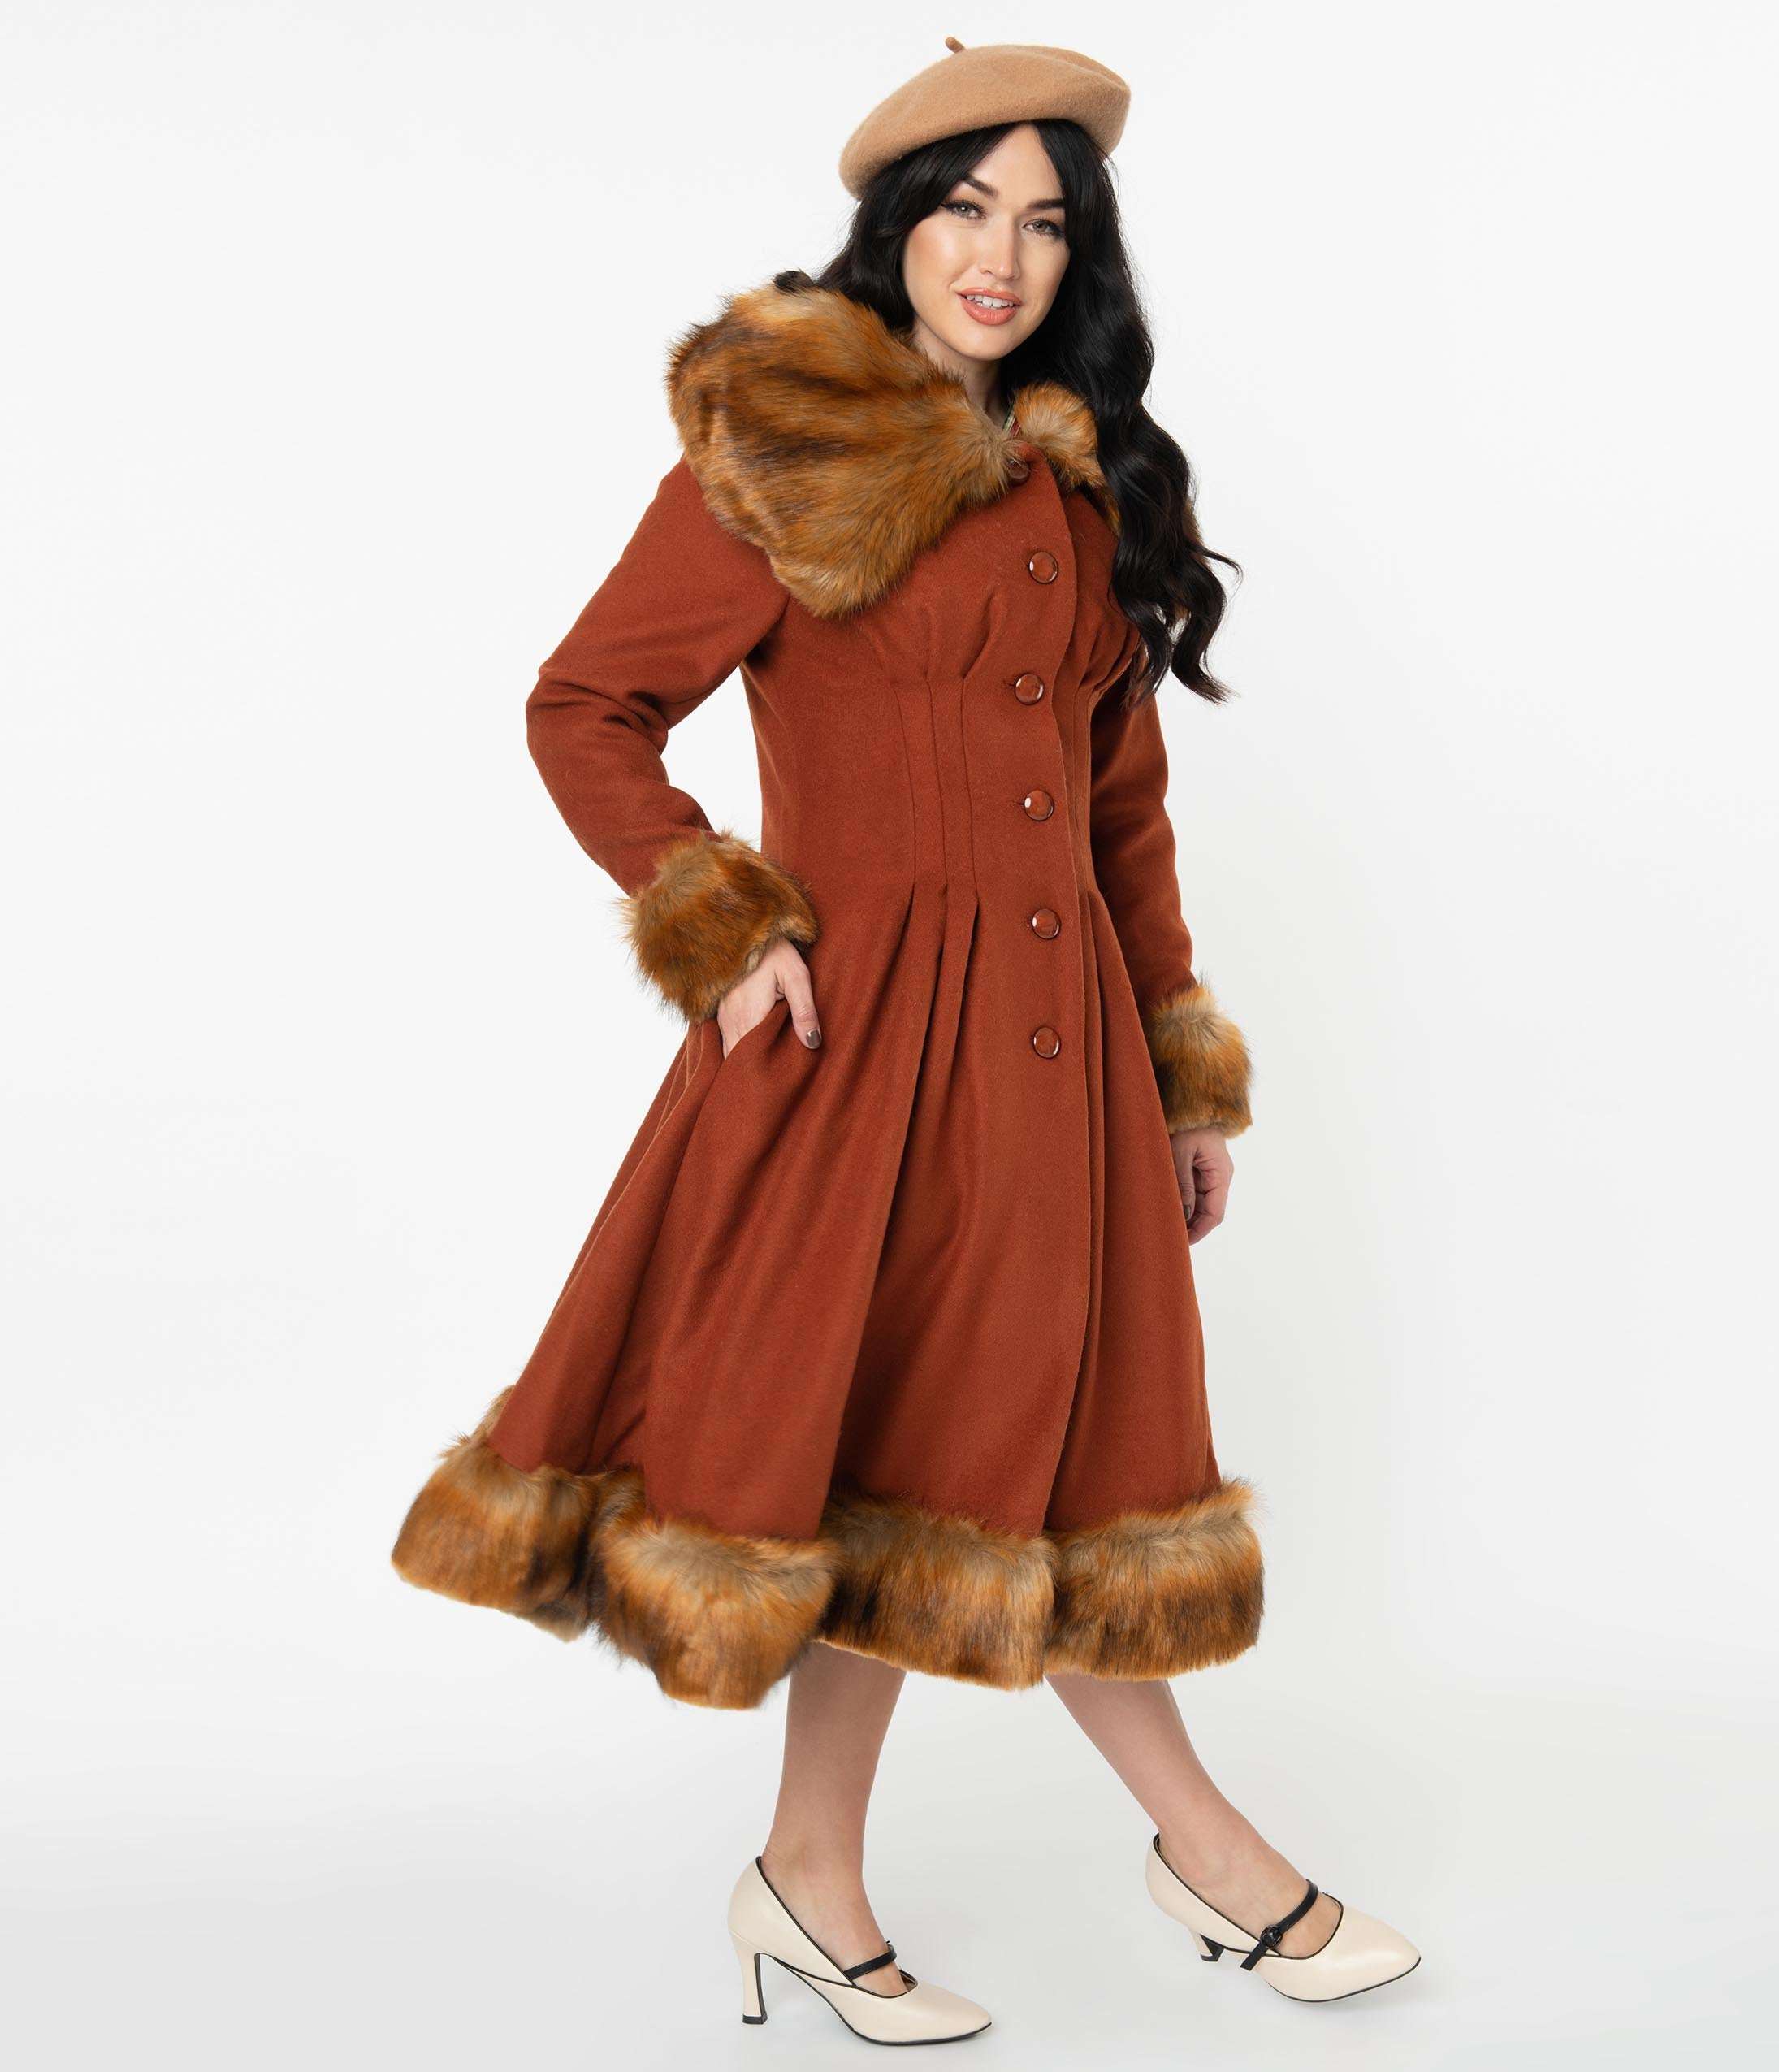 1930s Style Clothing and Fashion Collectif Vintage Rust Orange Wool  Fur Pearl Coat $278.00 AT vintagedancer.com